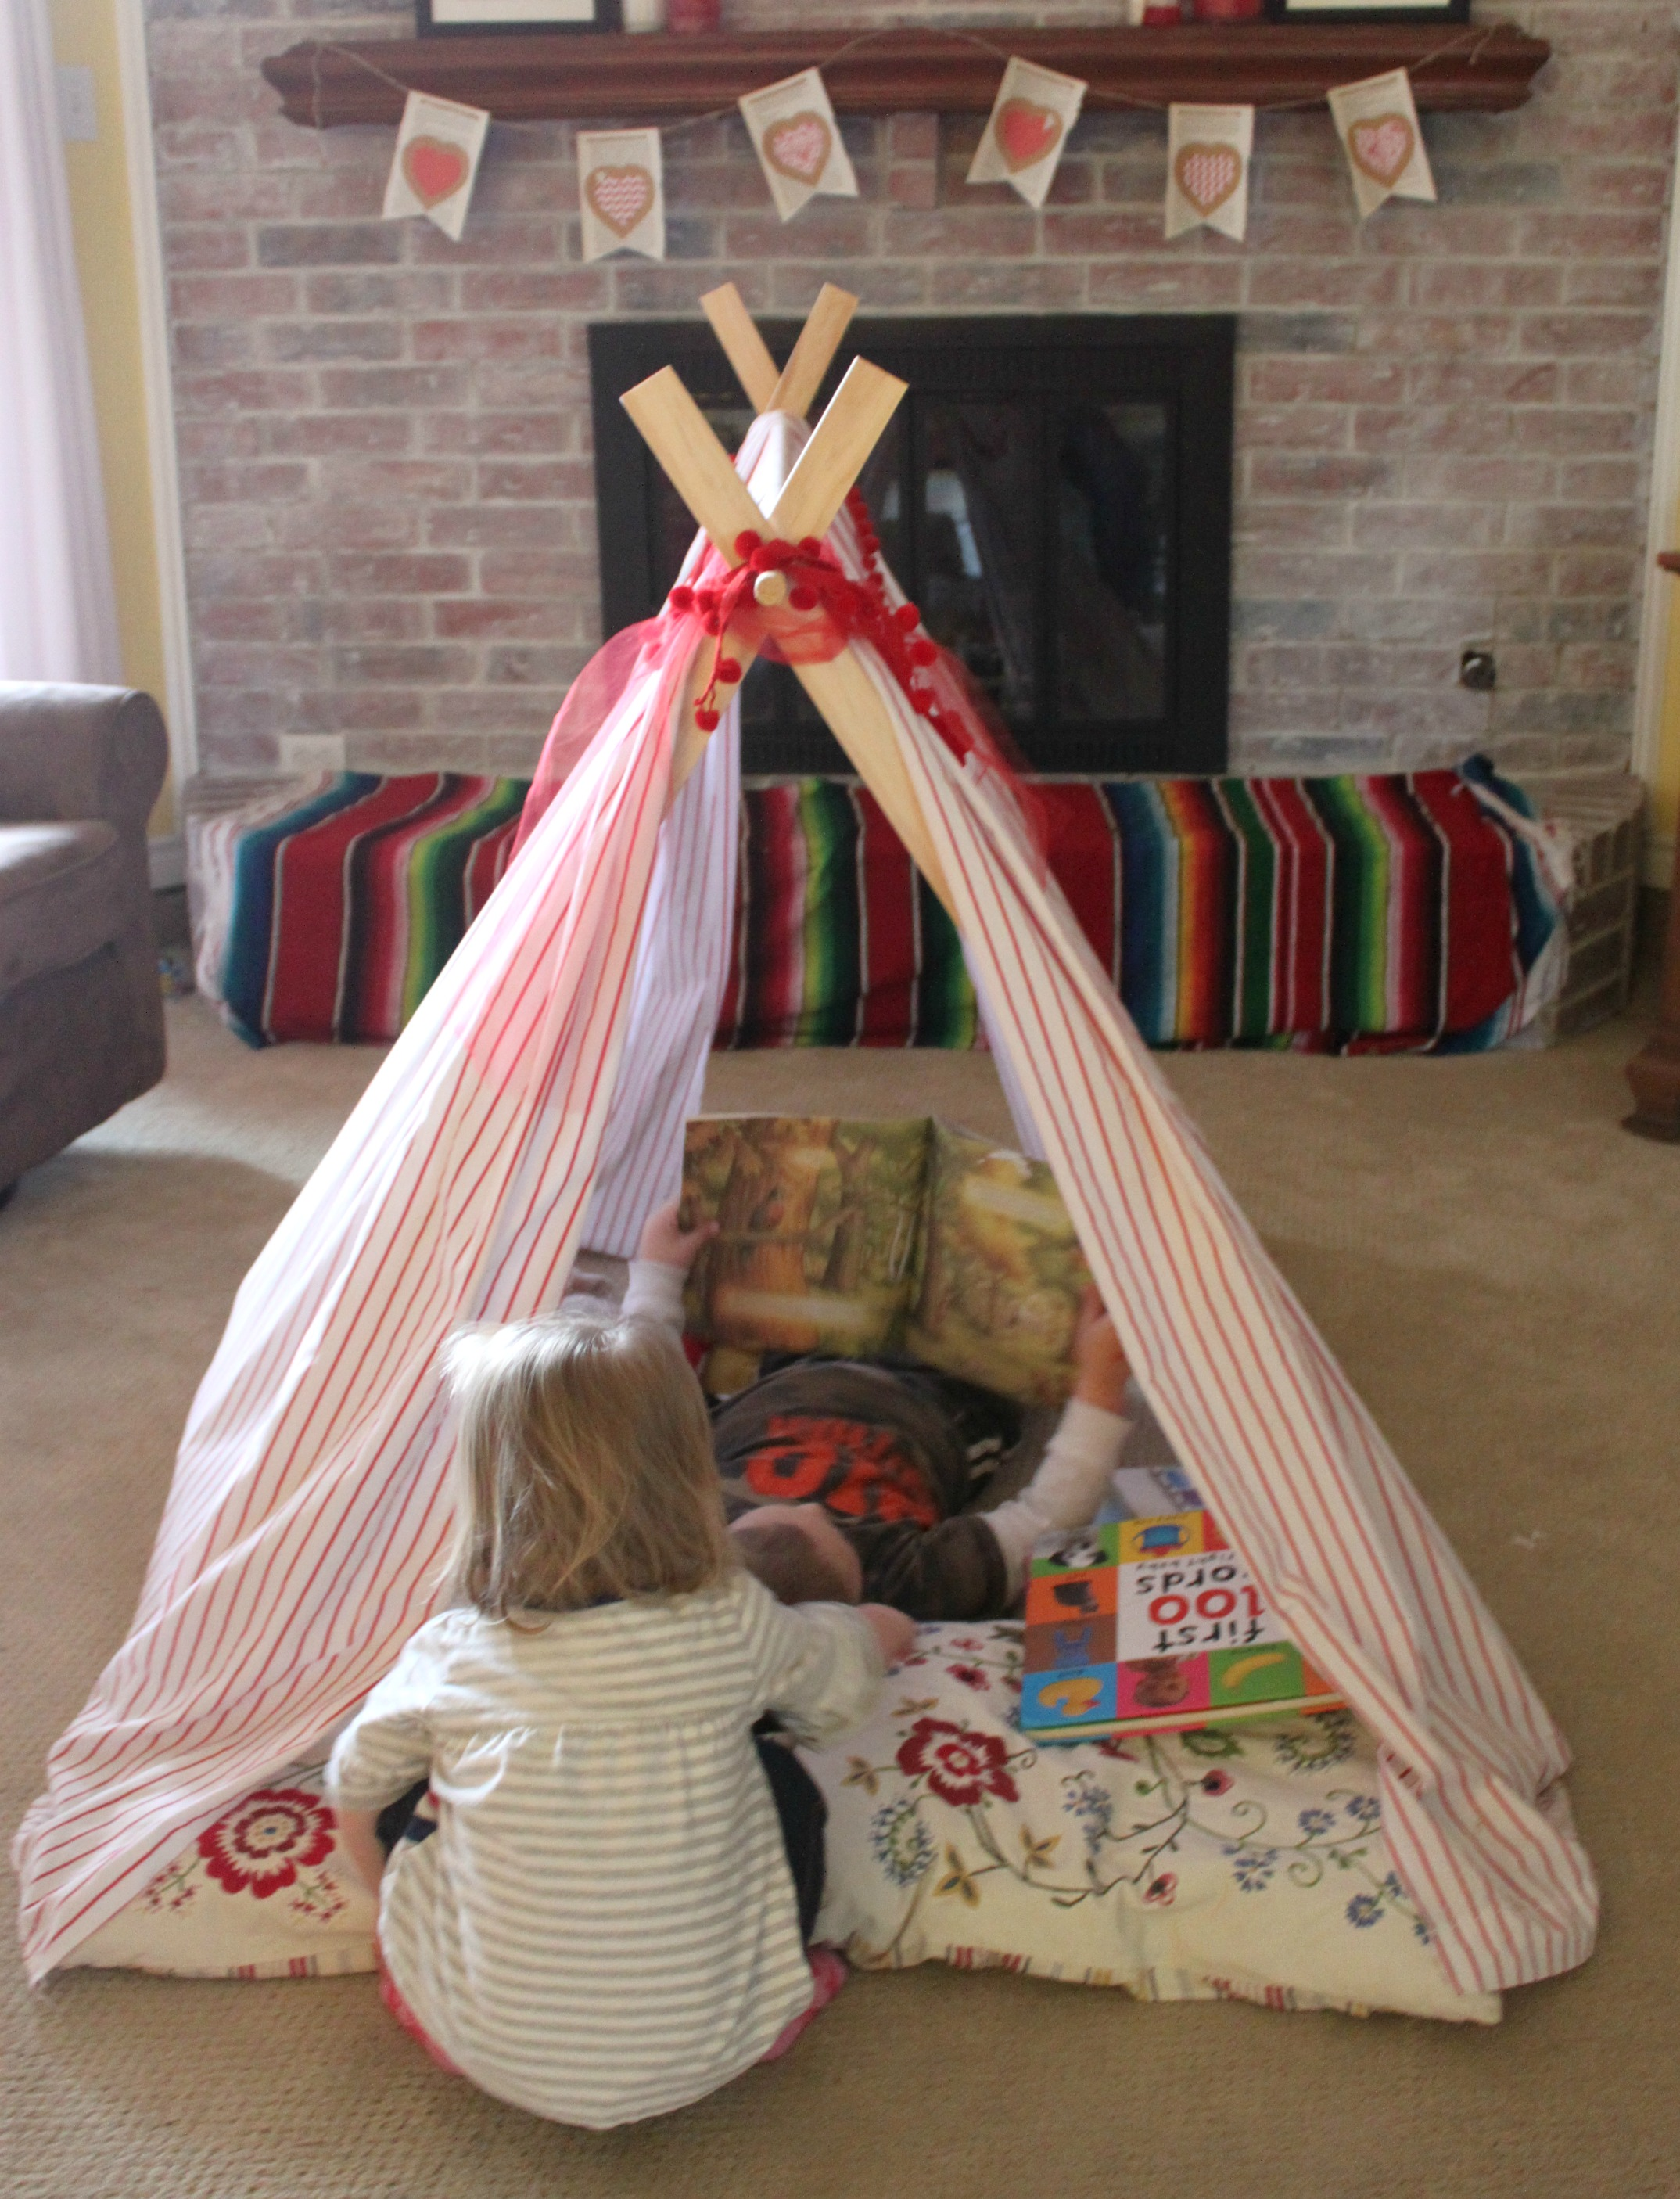 Our fun DIY play tent and reading nook & Create a DIY Play Tent and Reading Nook - Bare Feet on the Dashboard